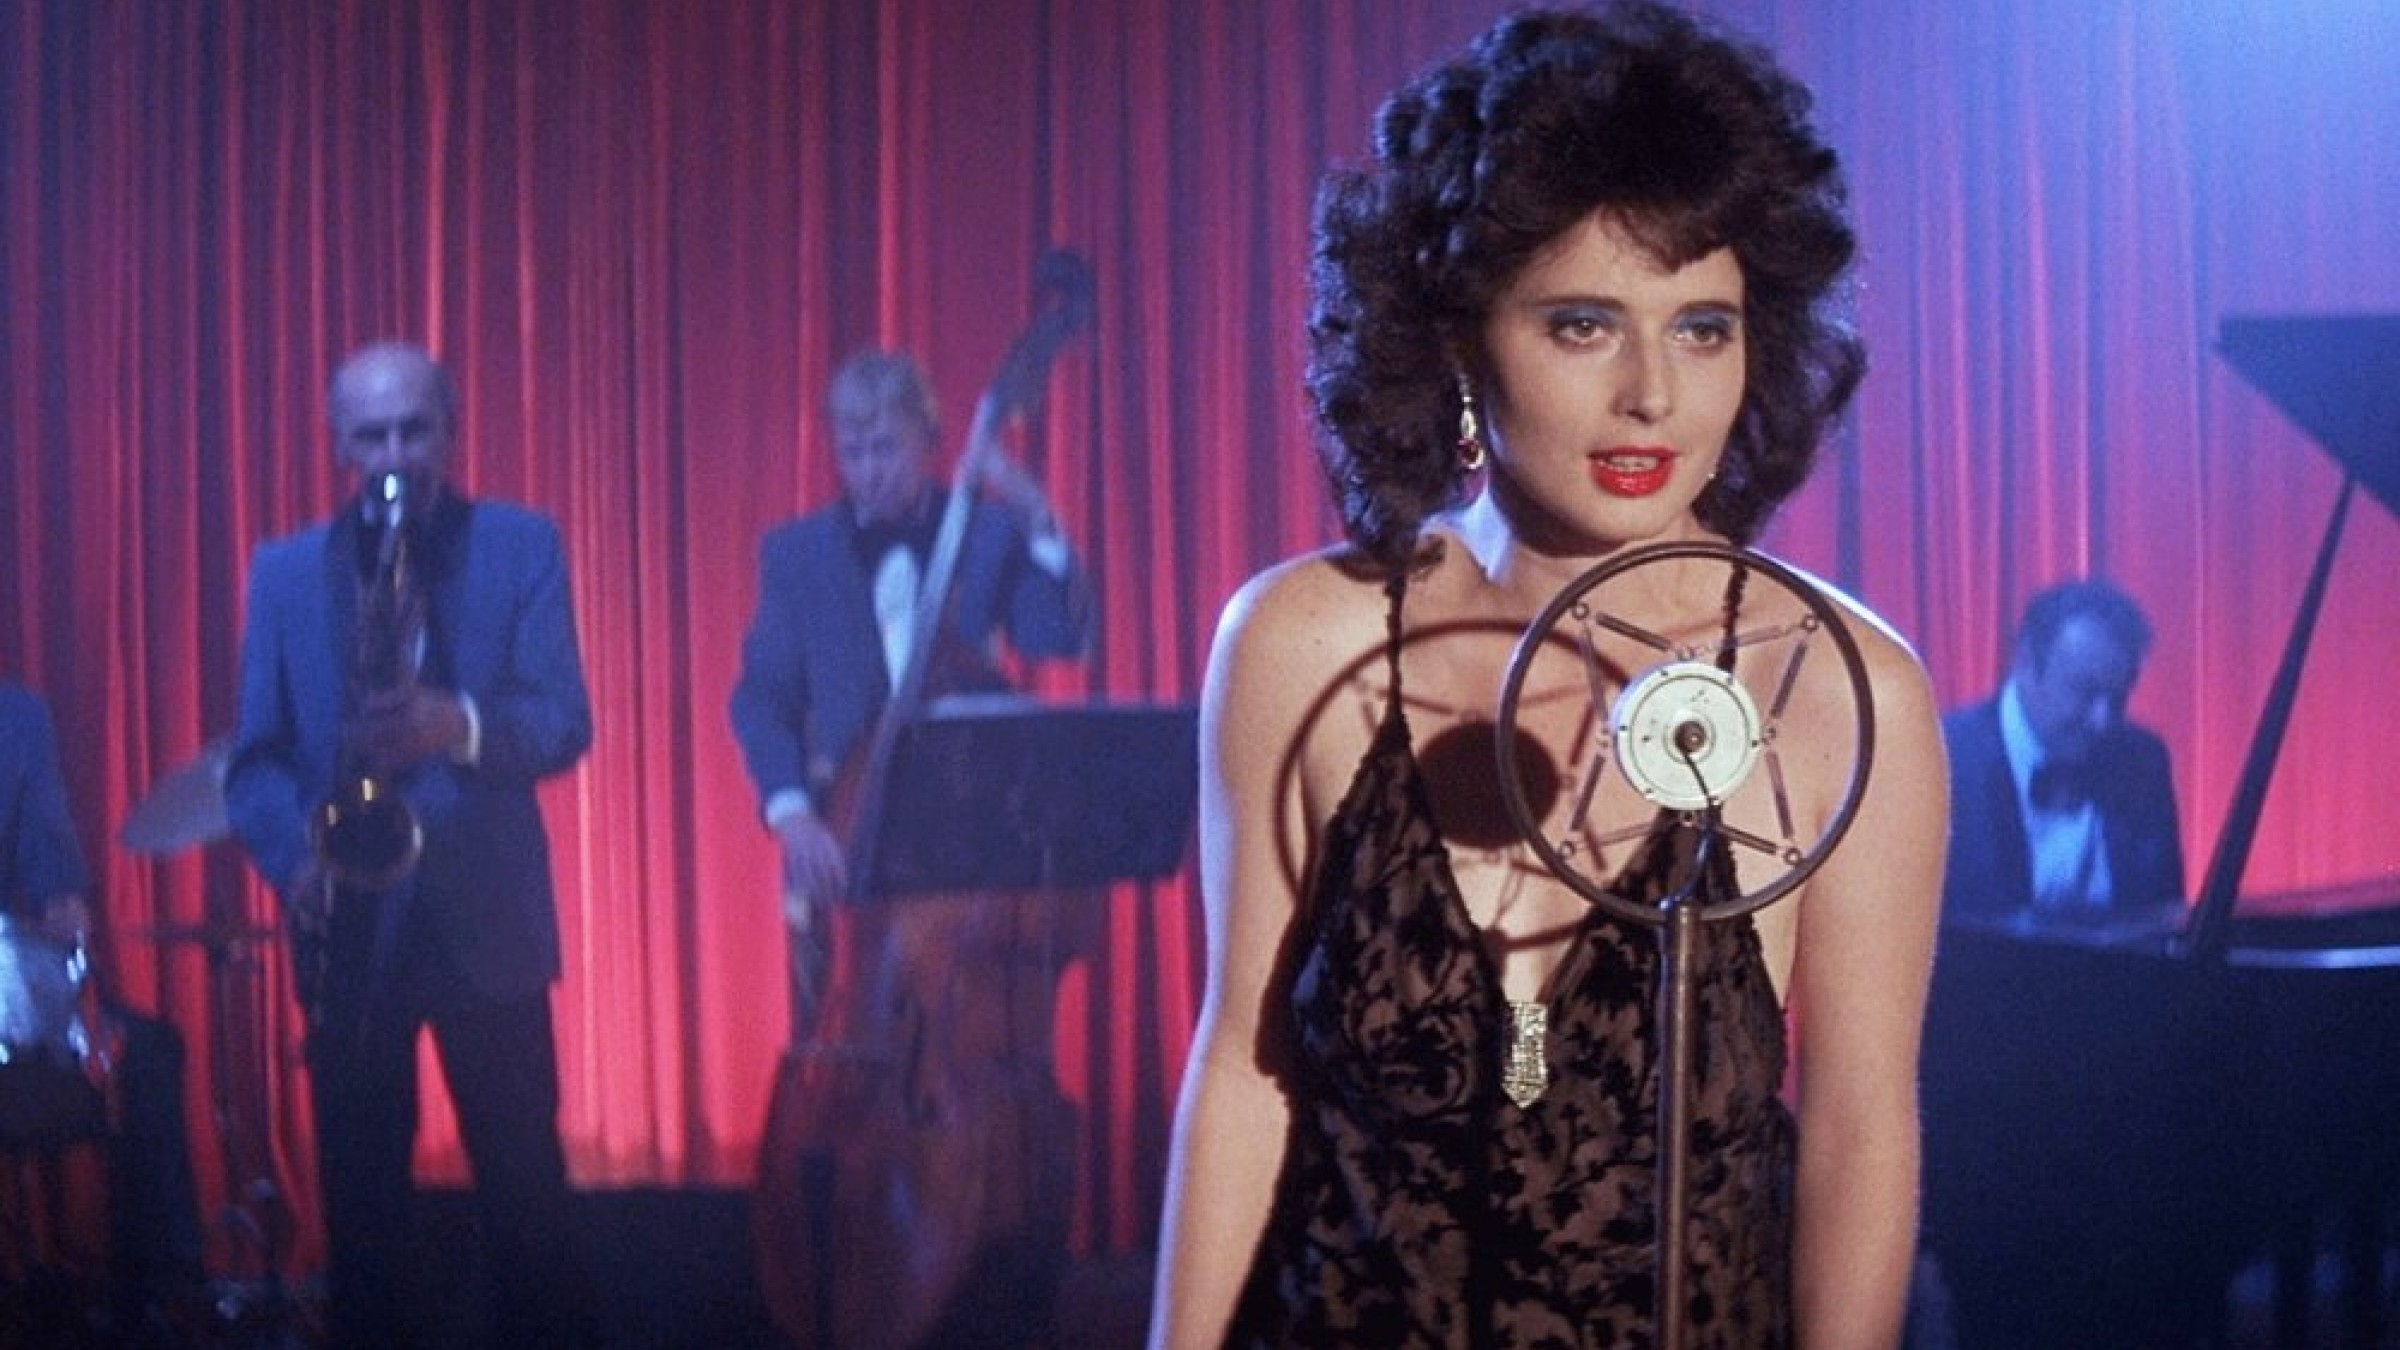 David Lynch's 'Blue Velvet' is Headed to the Criterion Collection